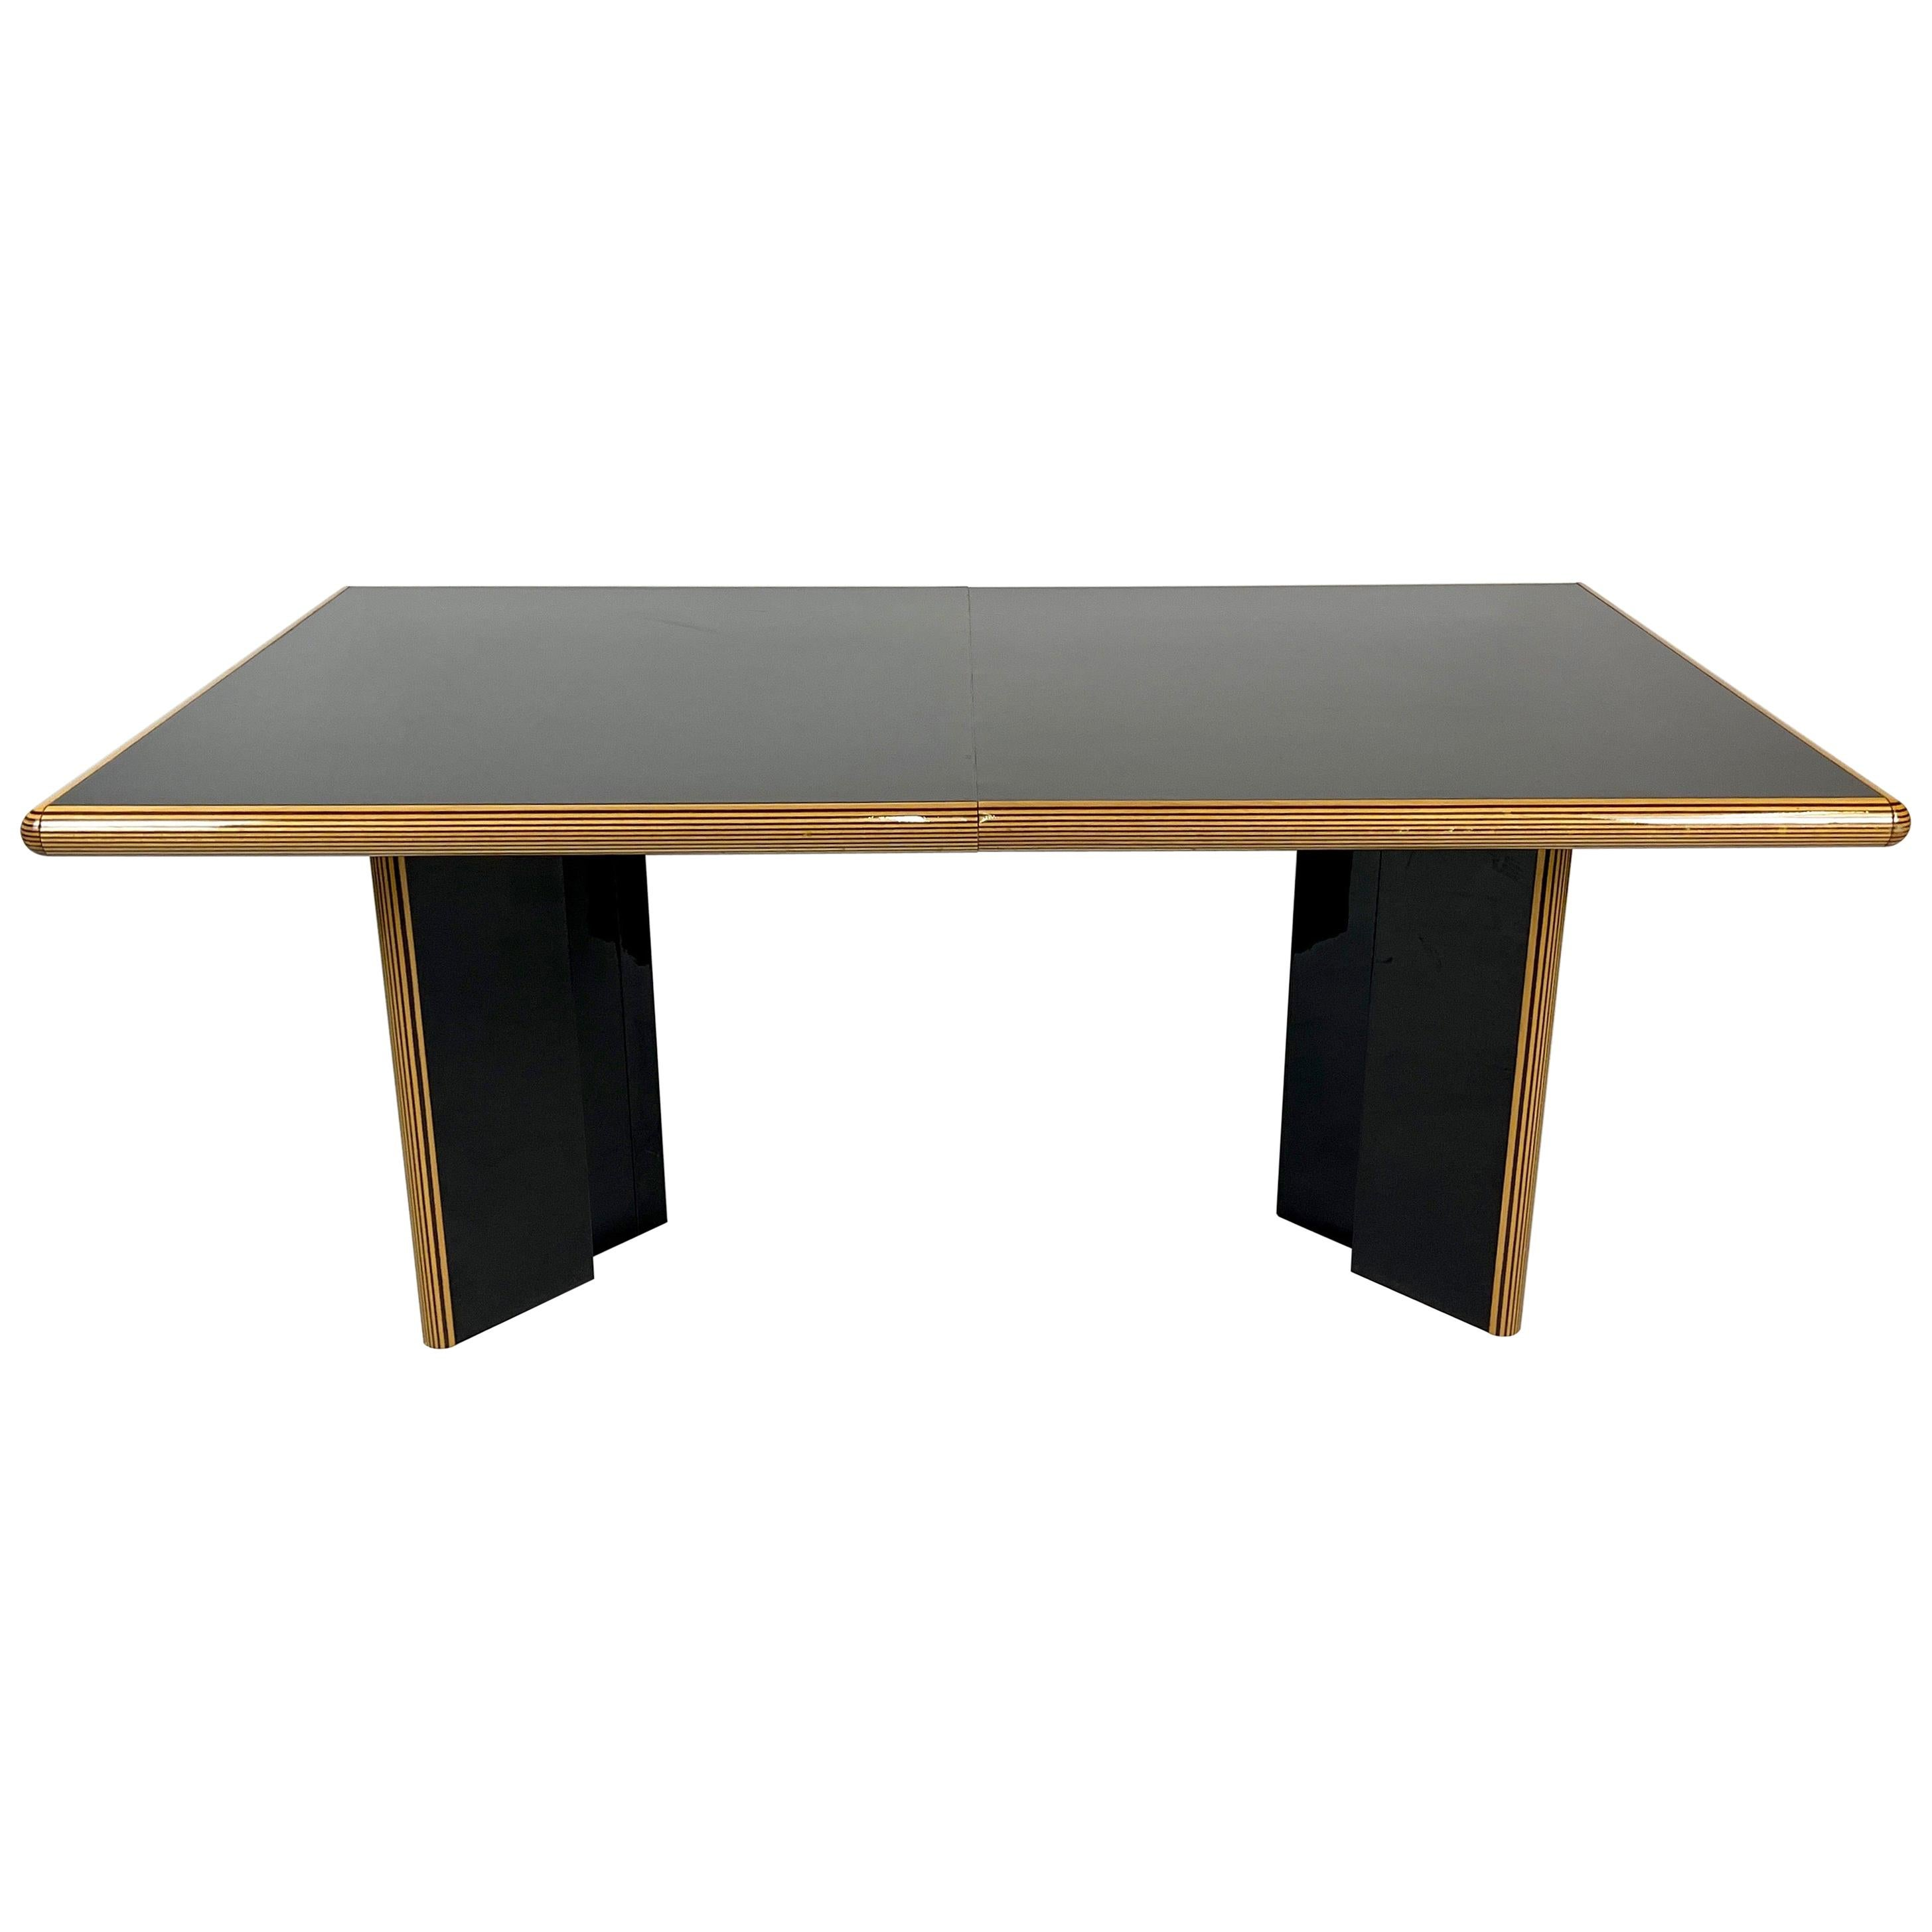 Incredible Pierre Cardin for Roche Bobois Black Lacquer Ext Dining Table, Italy